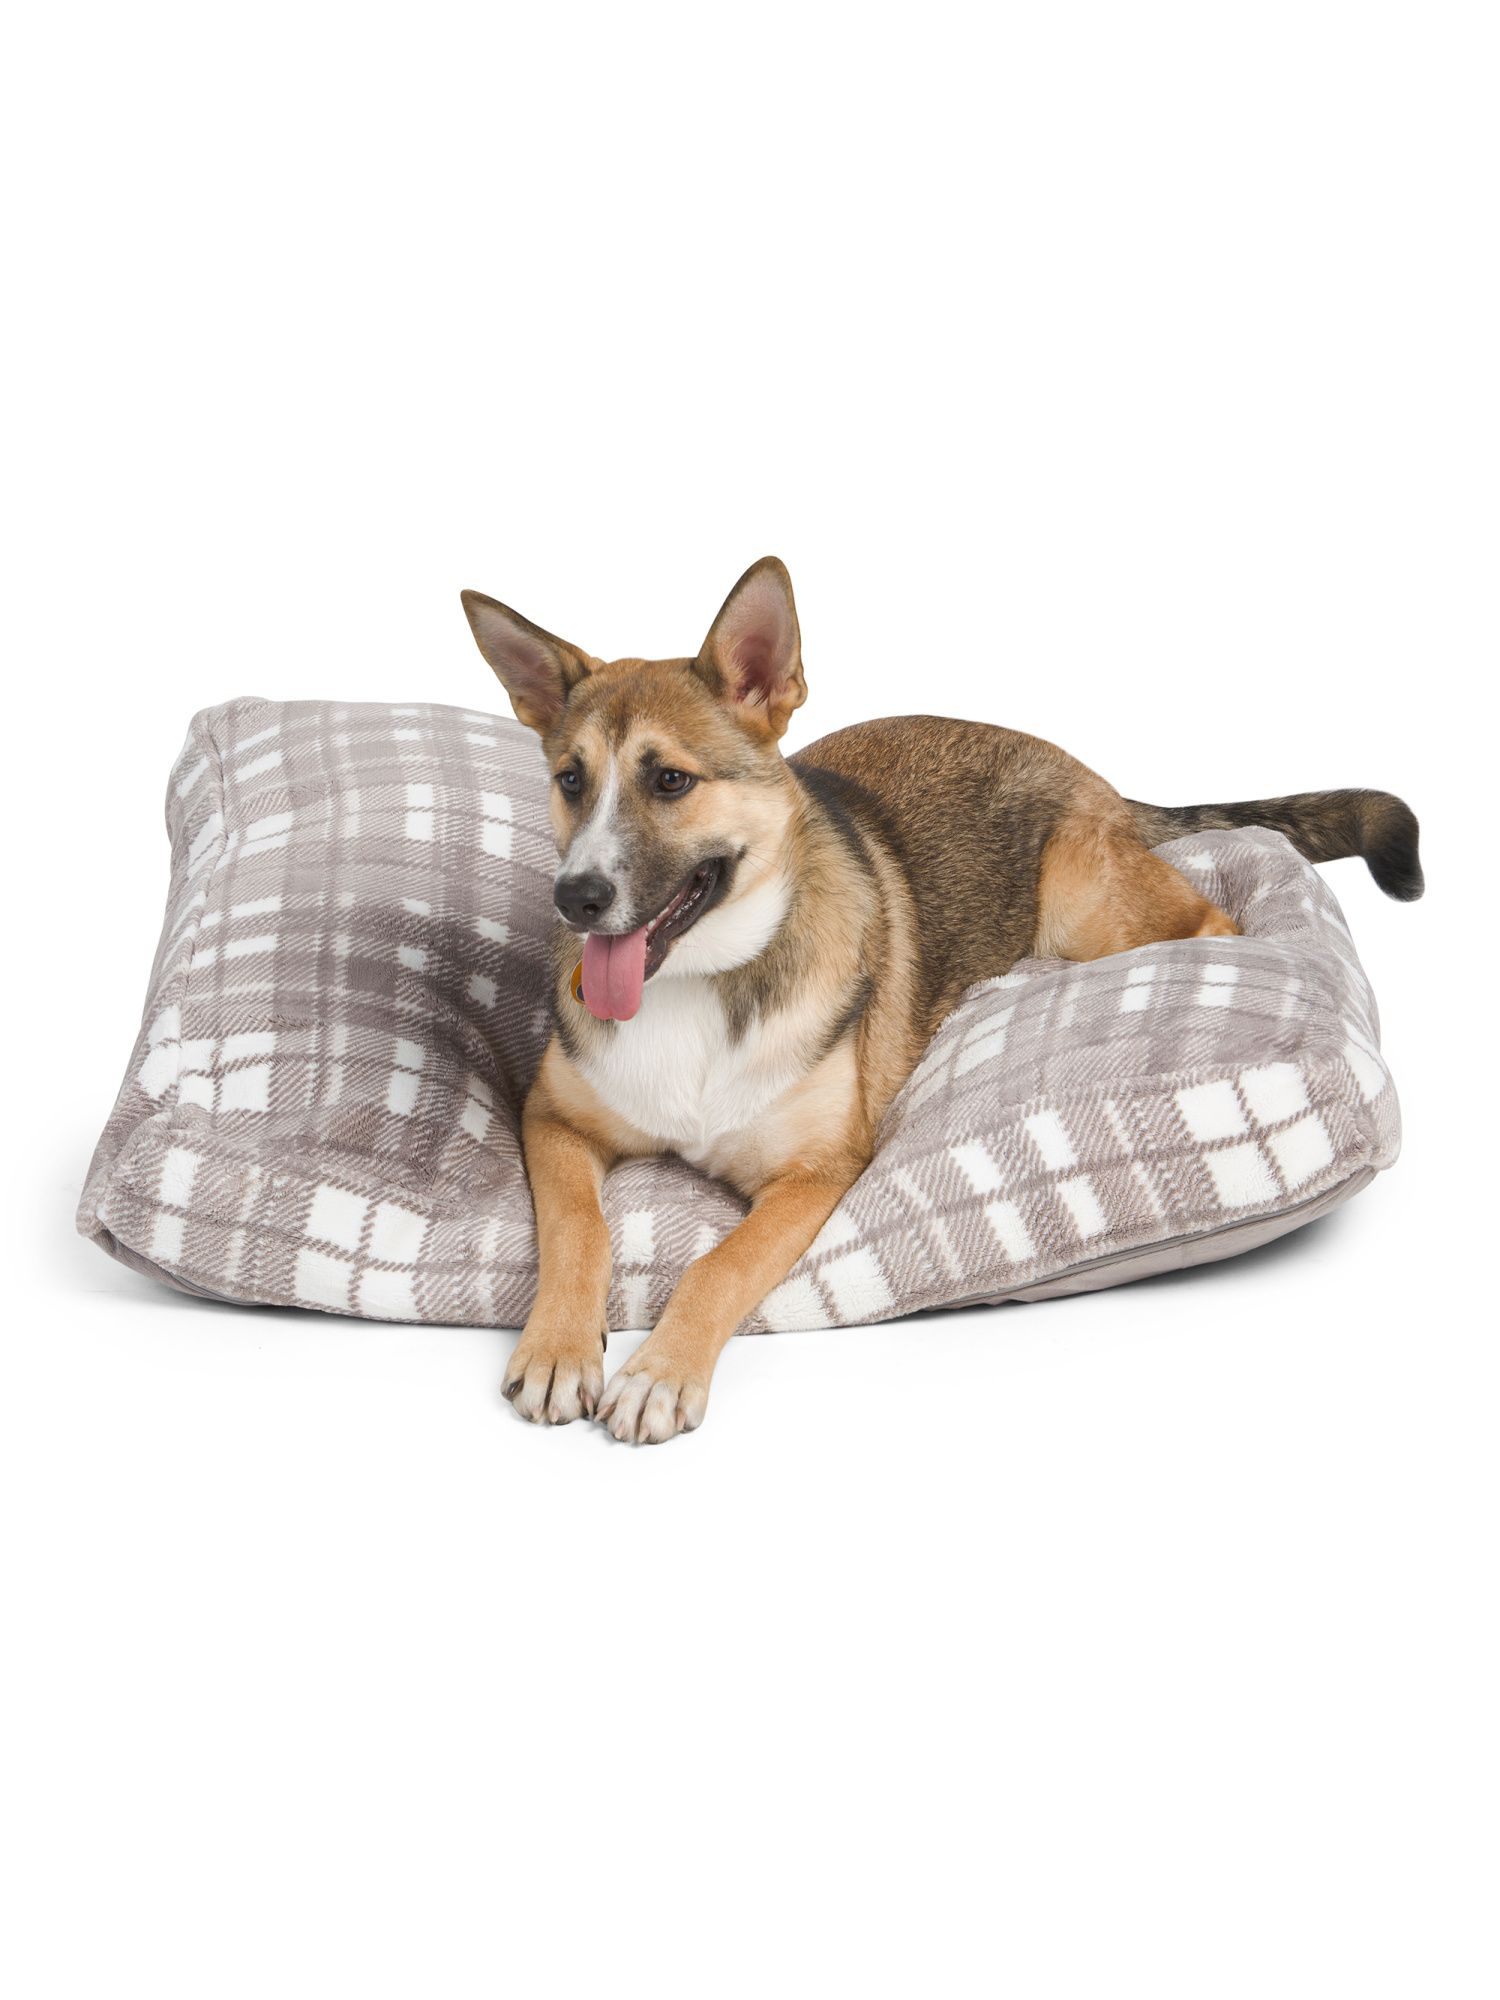 high resolution image Dog bed, Dogs, Doggy